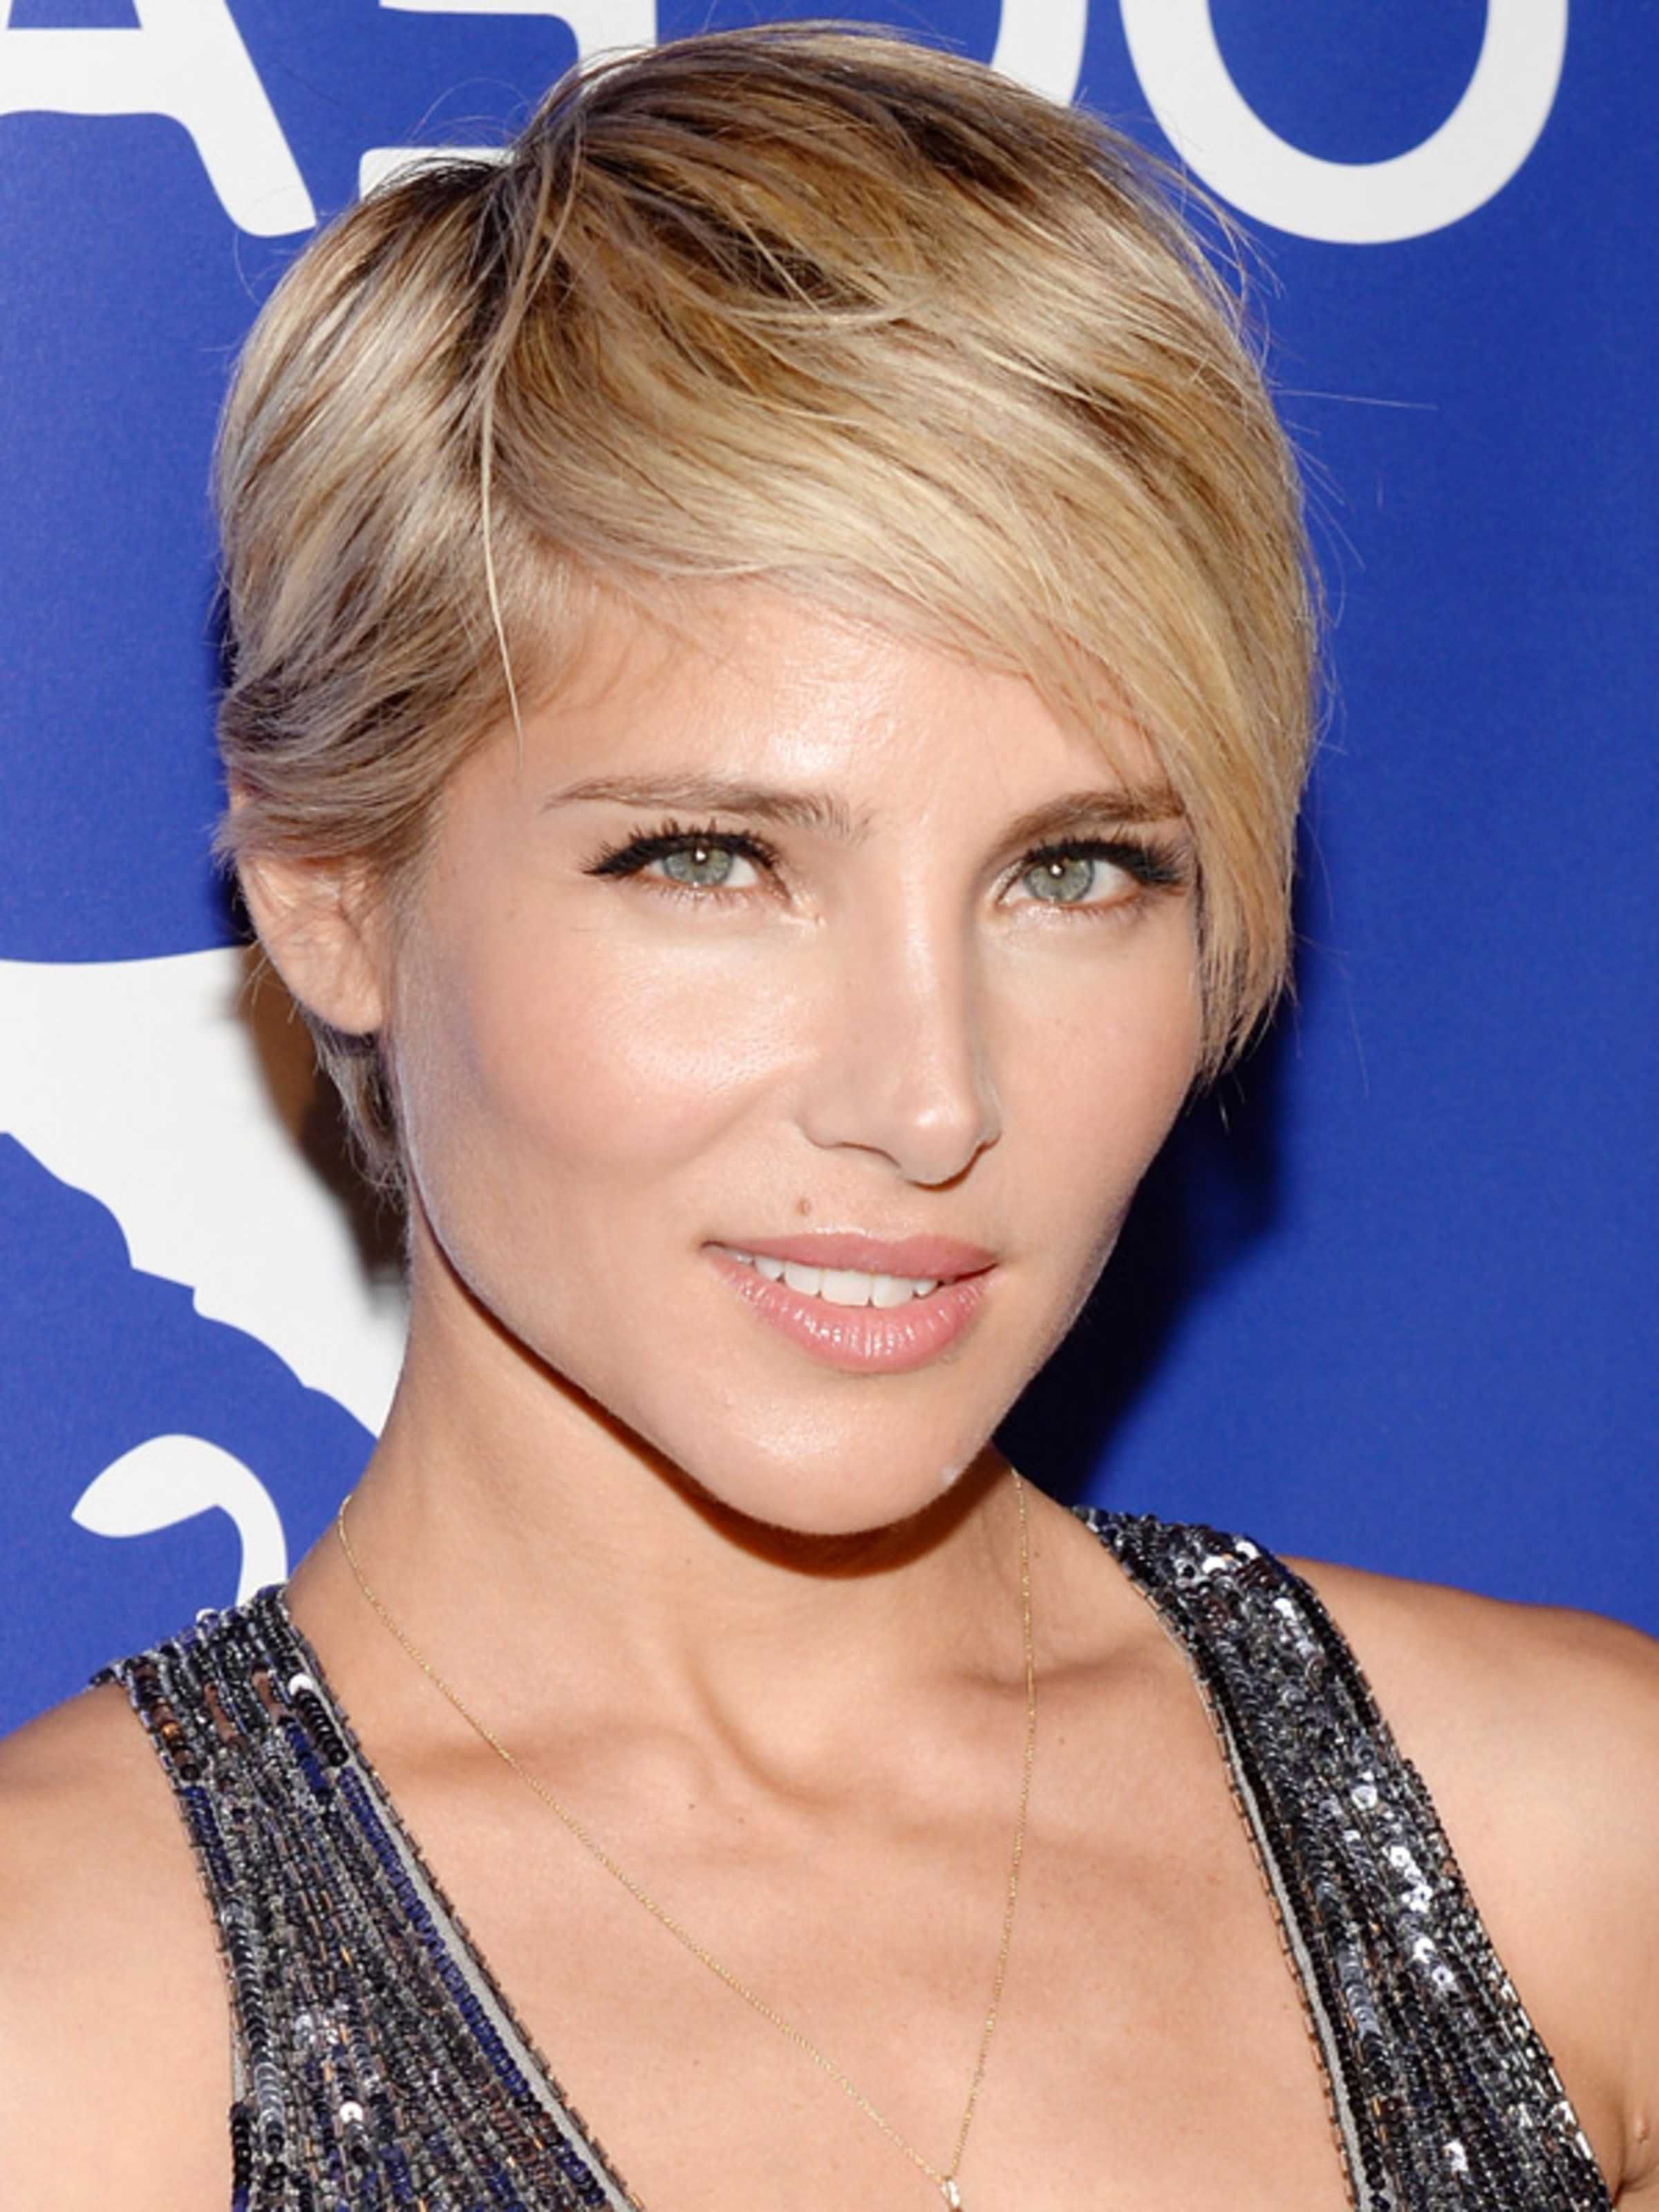 Elsa Pataky Has The Best Short Haircut I've Ever Seen | Short Hair With Short Hairstyles For High Cheekbones (View 6 of 25)